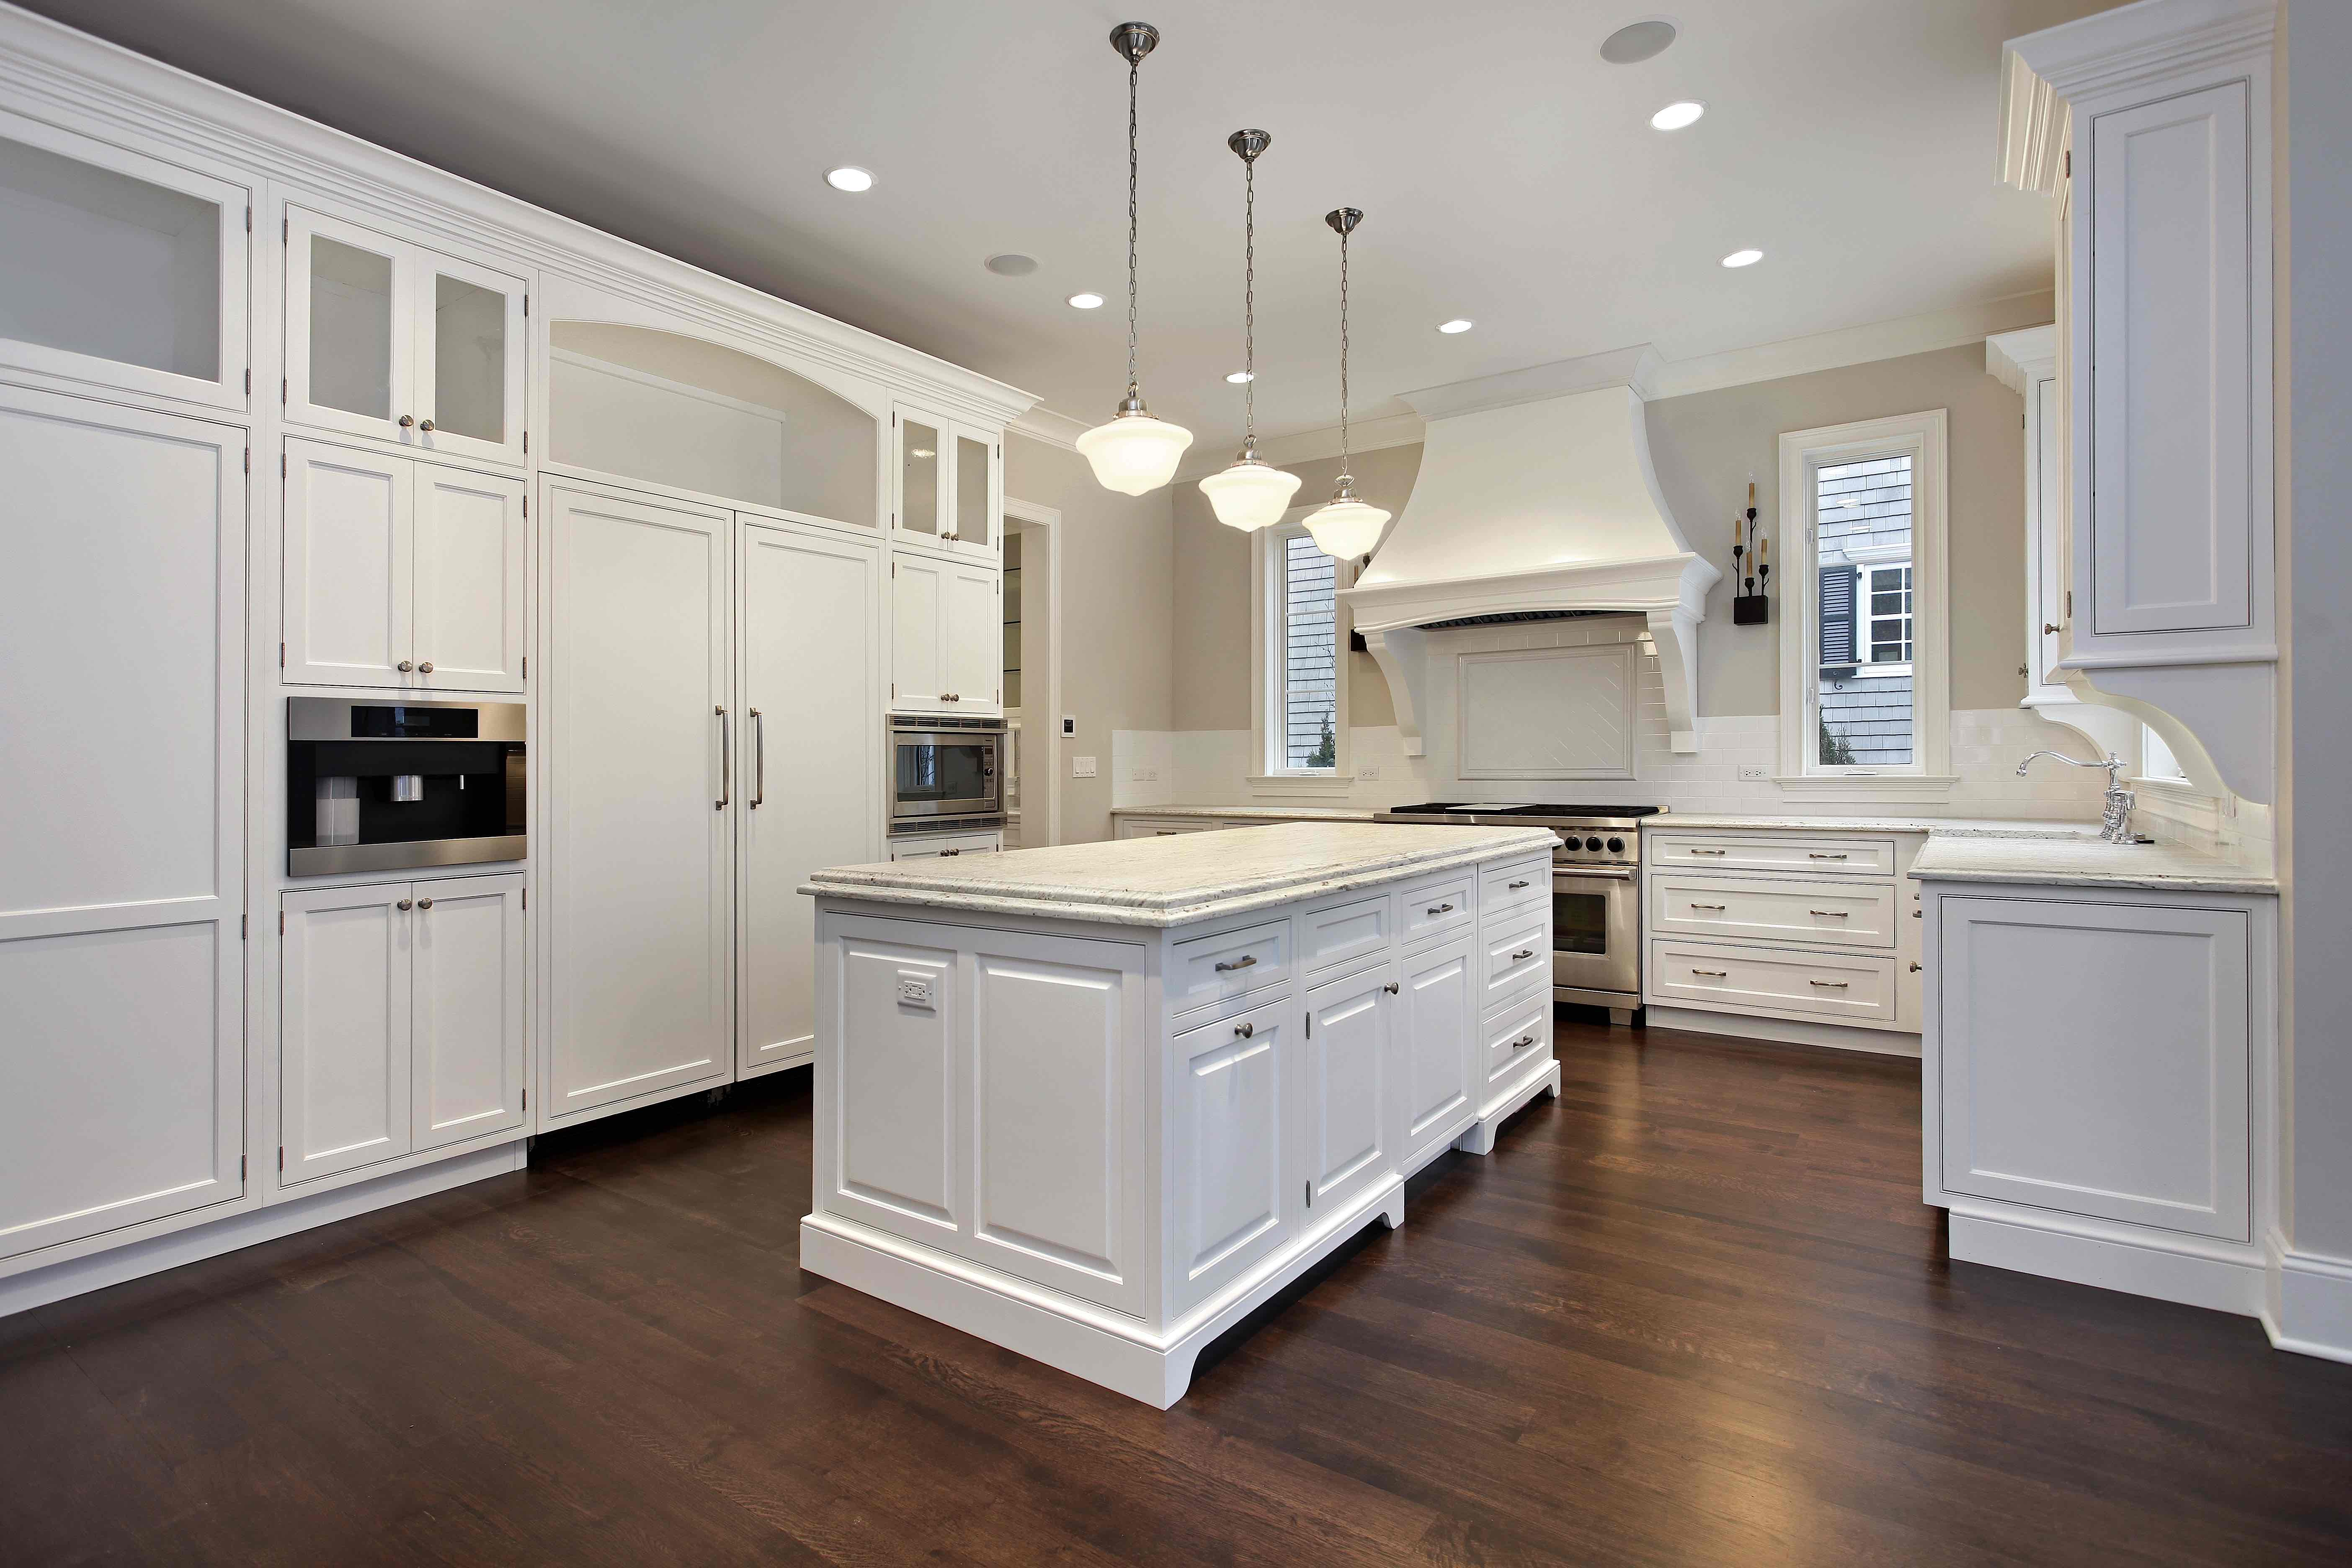 Kitchen Cabinets Color 2016 Top 5 Kitchen Trends Of 2016